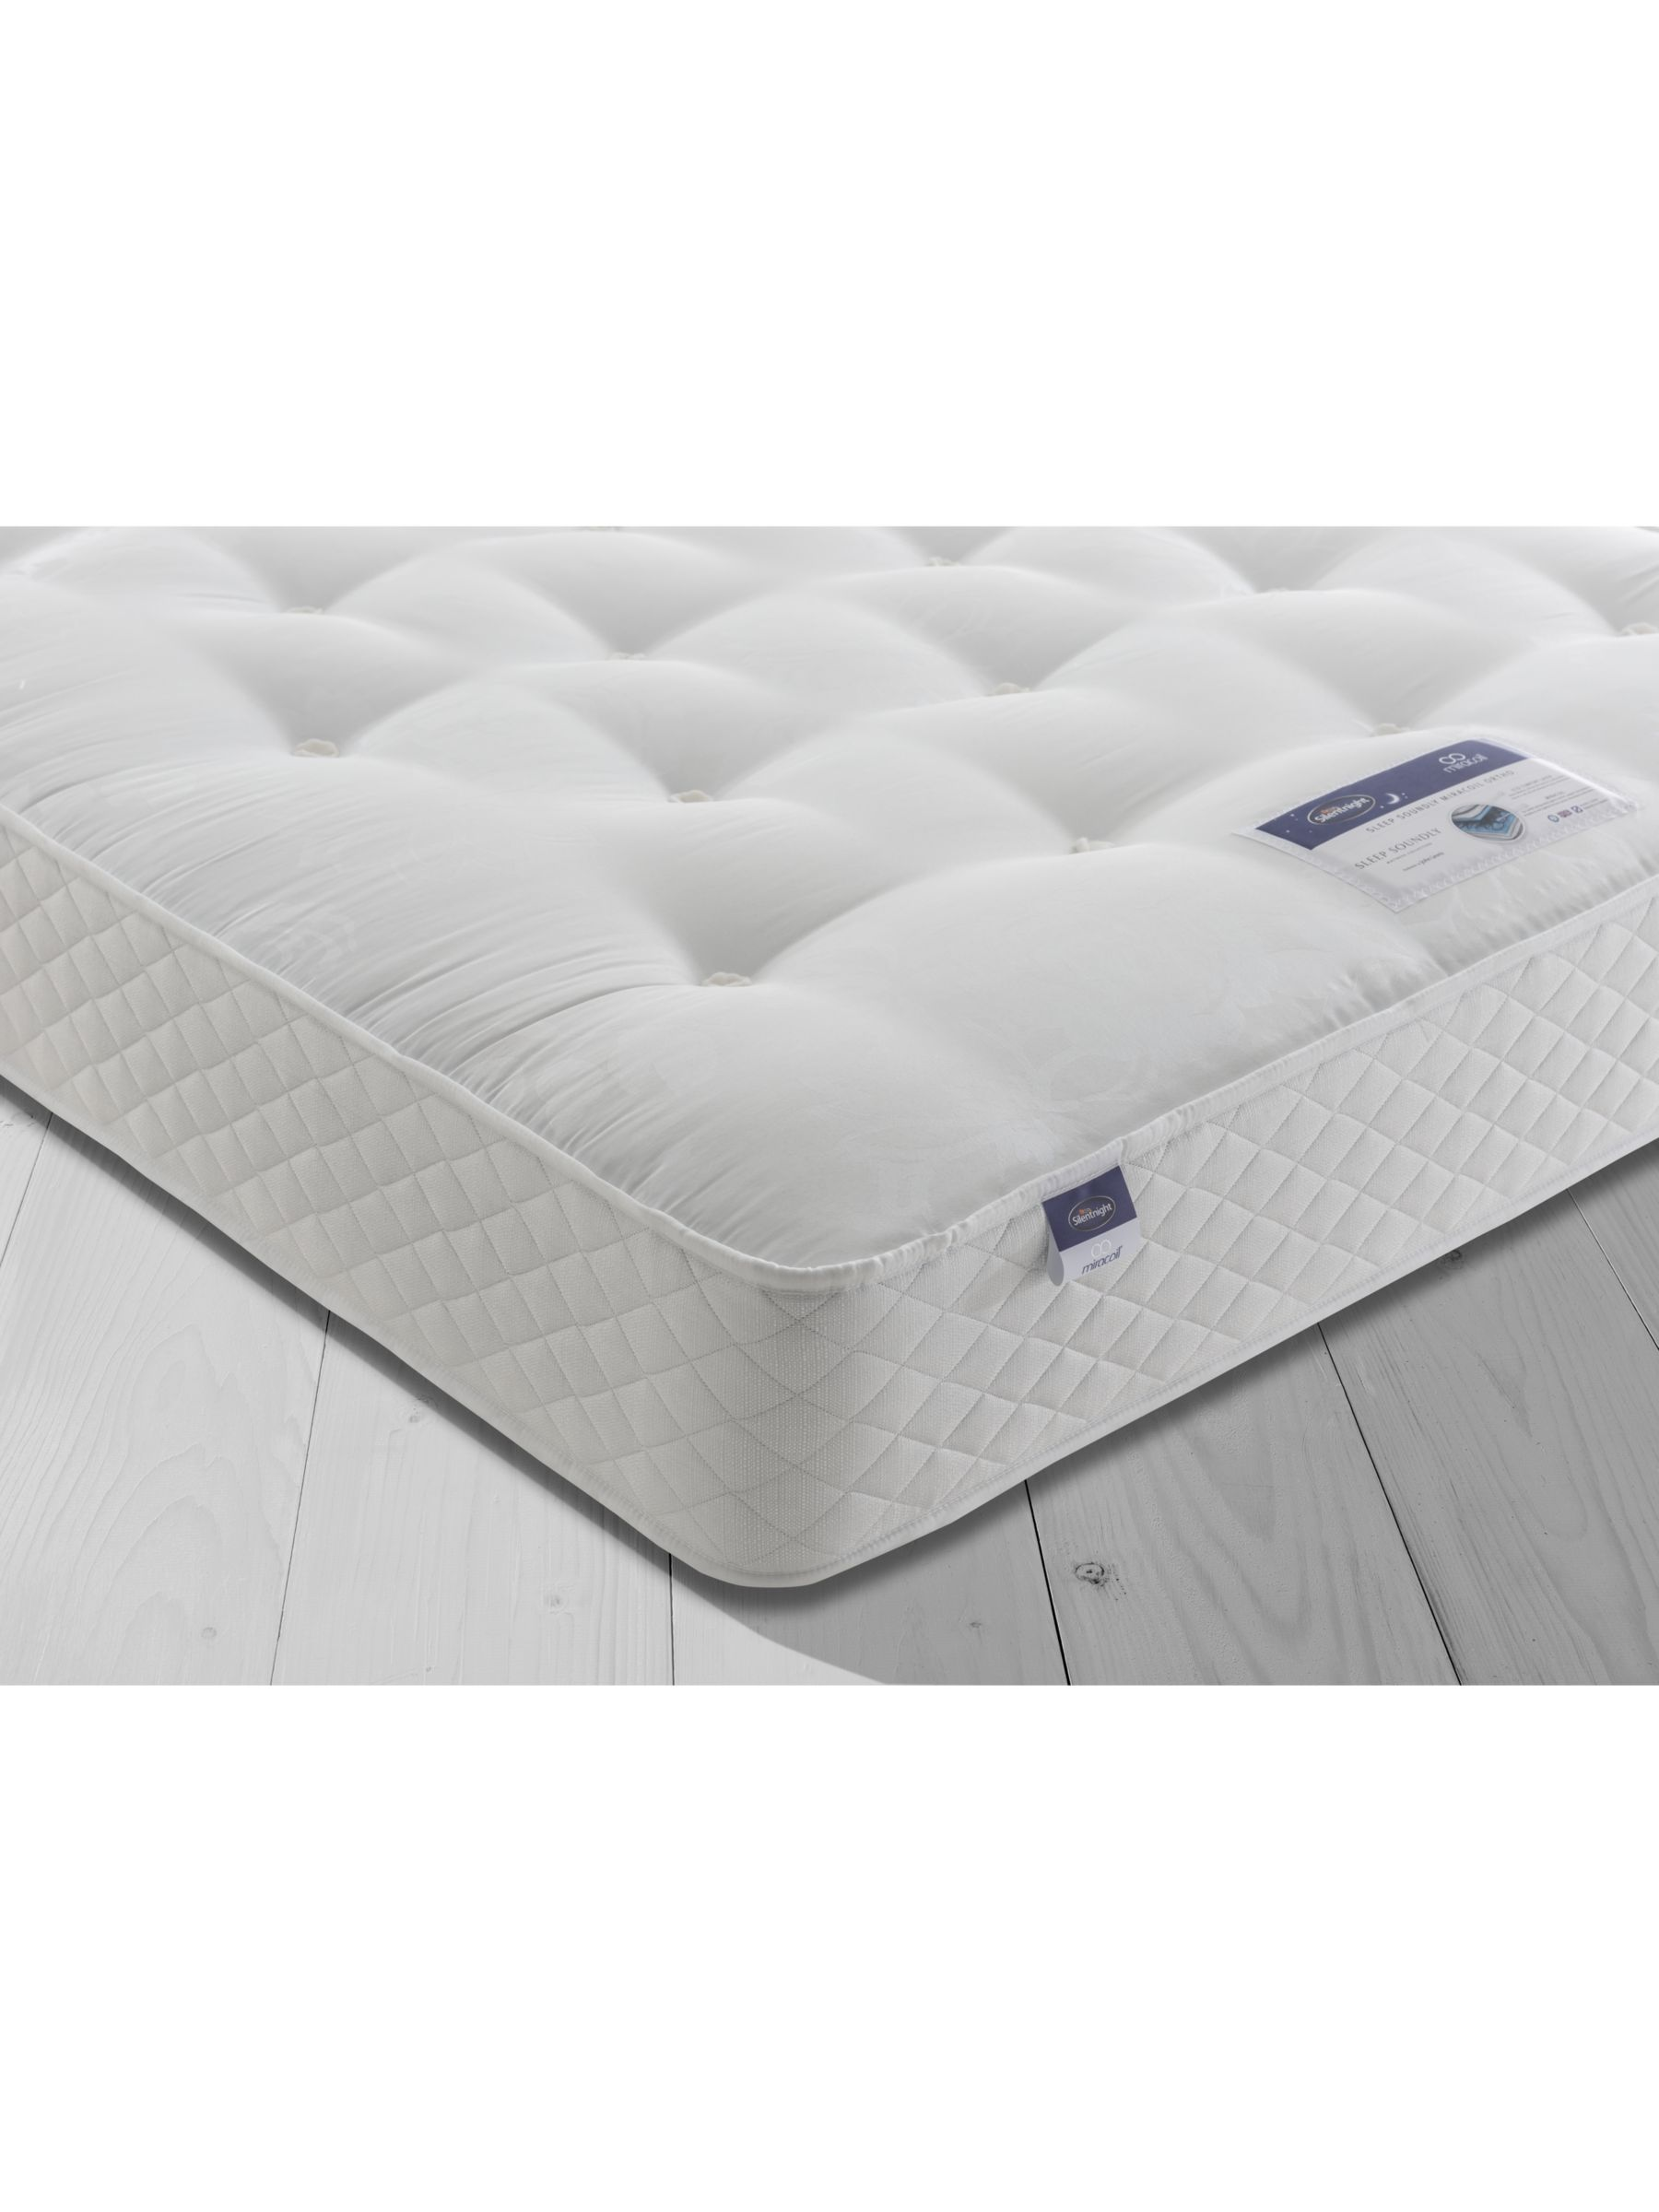 Silentnight Silentnight Sleep Soundly Miracoil Ortho Divan Base and Mattress Set, FSC-Certified (Picea Abies, Chipboard), Firm, Double